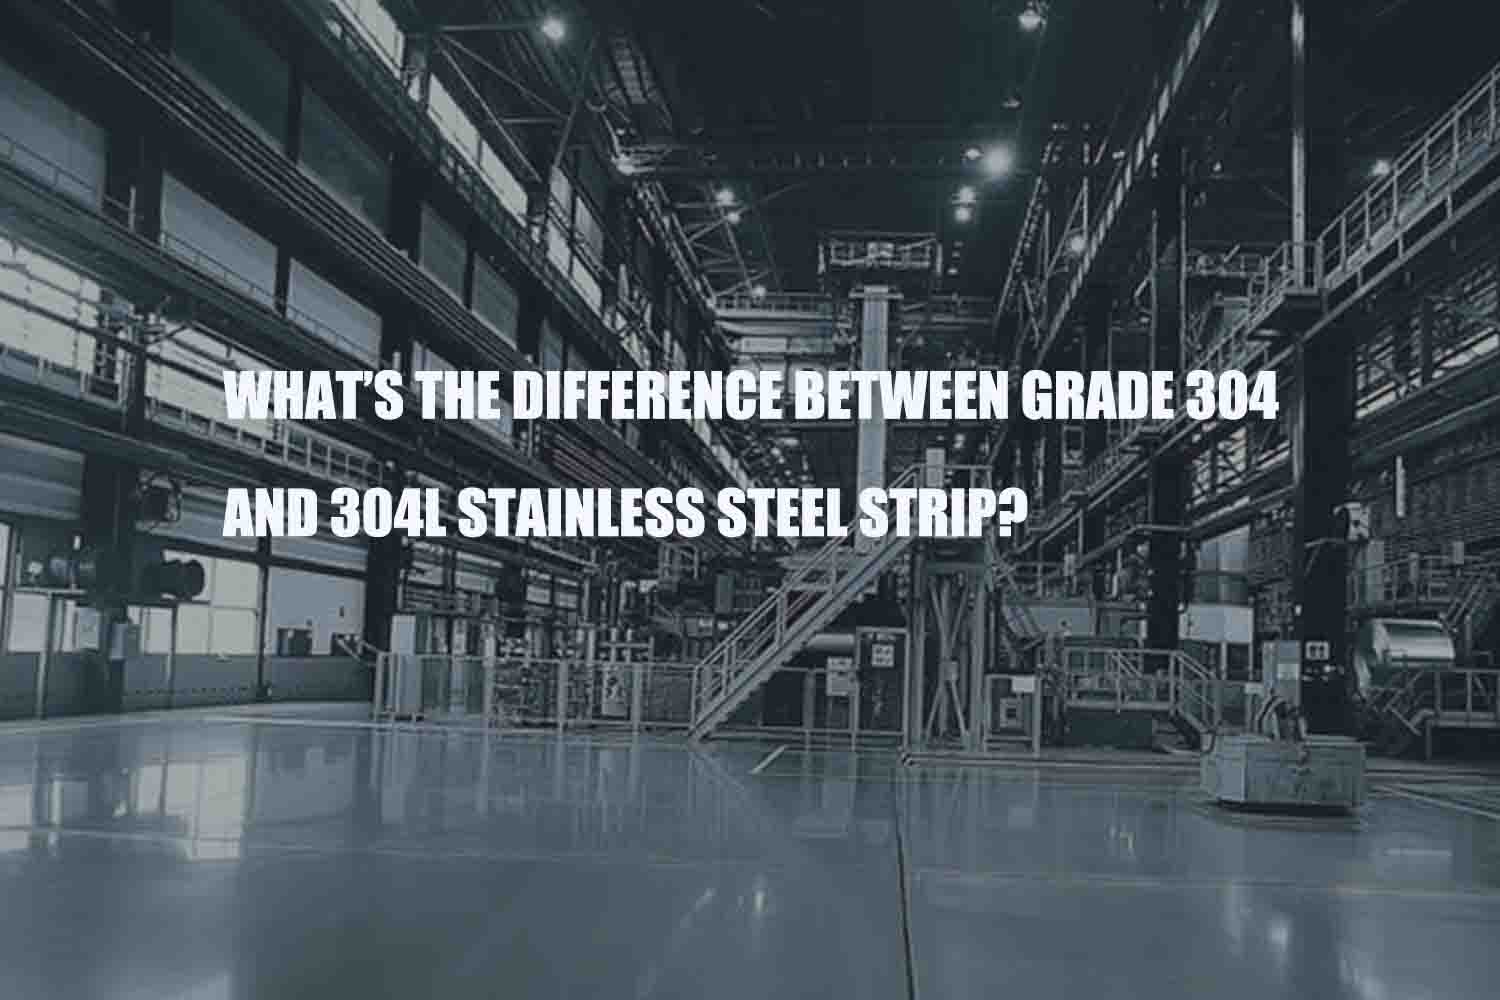 whats-the-difference-between-grade-304-and-304l-stainless-steel-strip